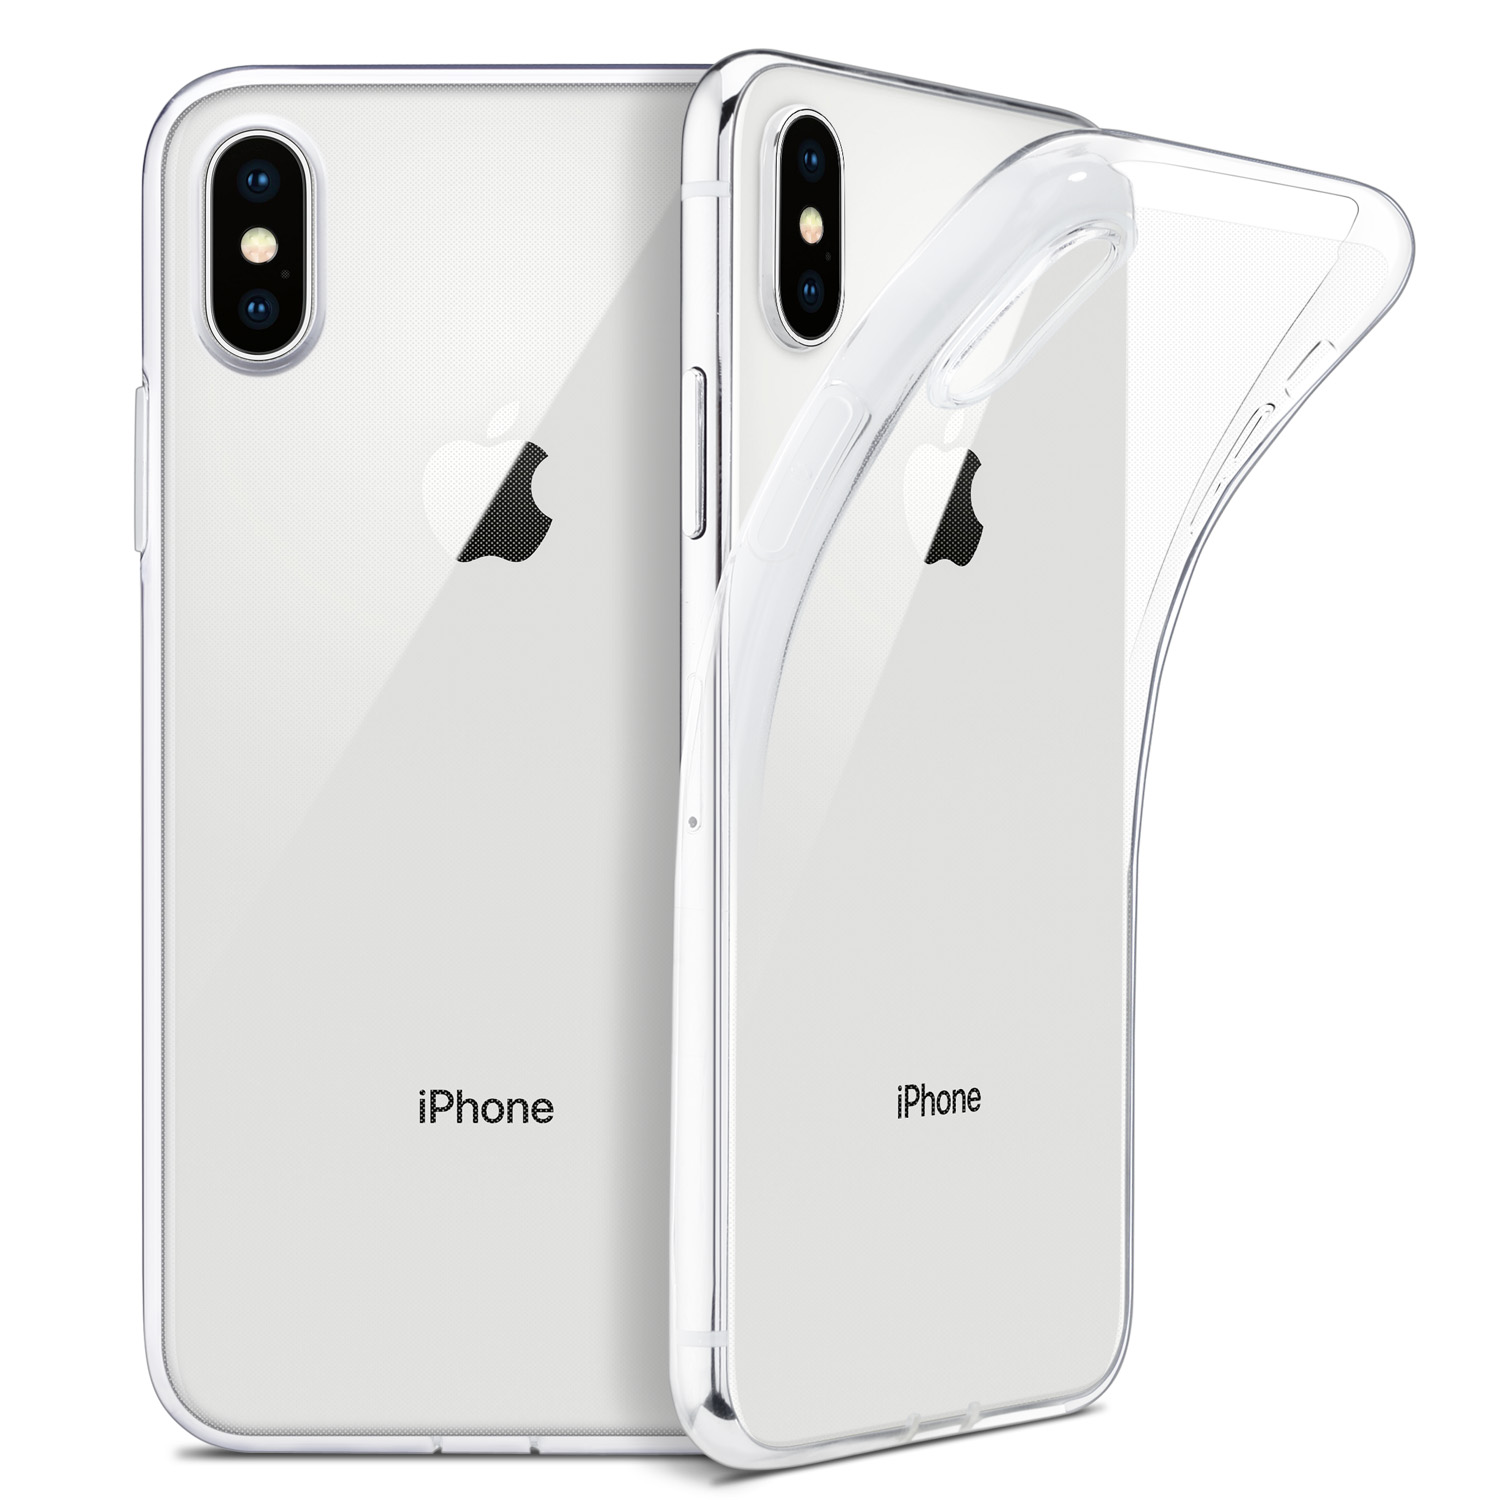 "H4db0054cfc874897914d7f5bc7a066c3p - For iPhone X Case, WEFOR Slim Clear Soft TPU Cover Support Wireless Charging for Apple 5.8"" iPhone X /iPhone 10"